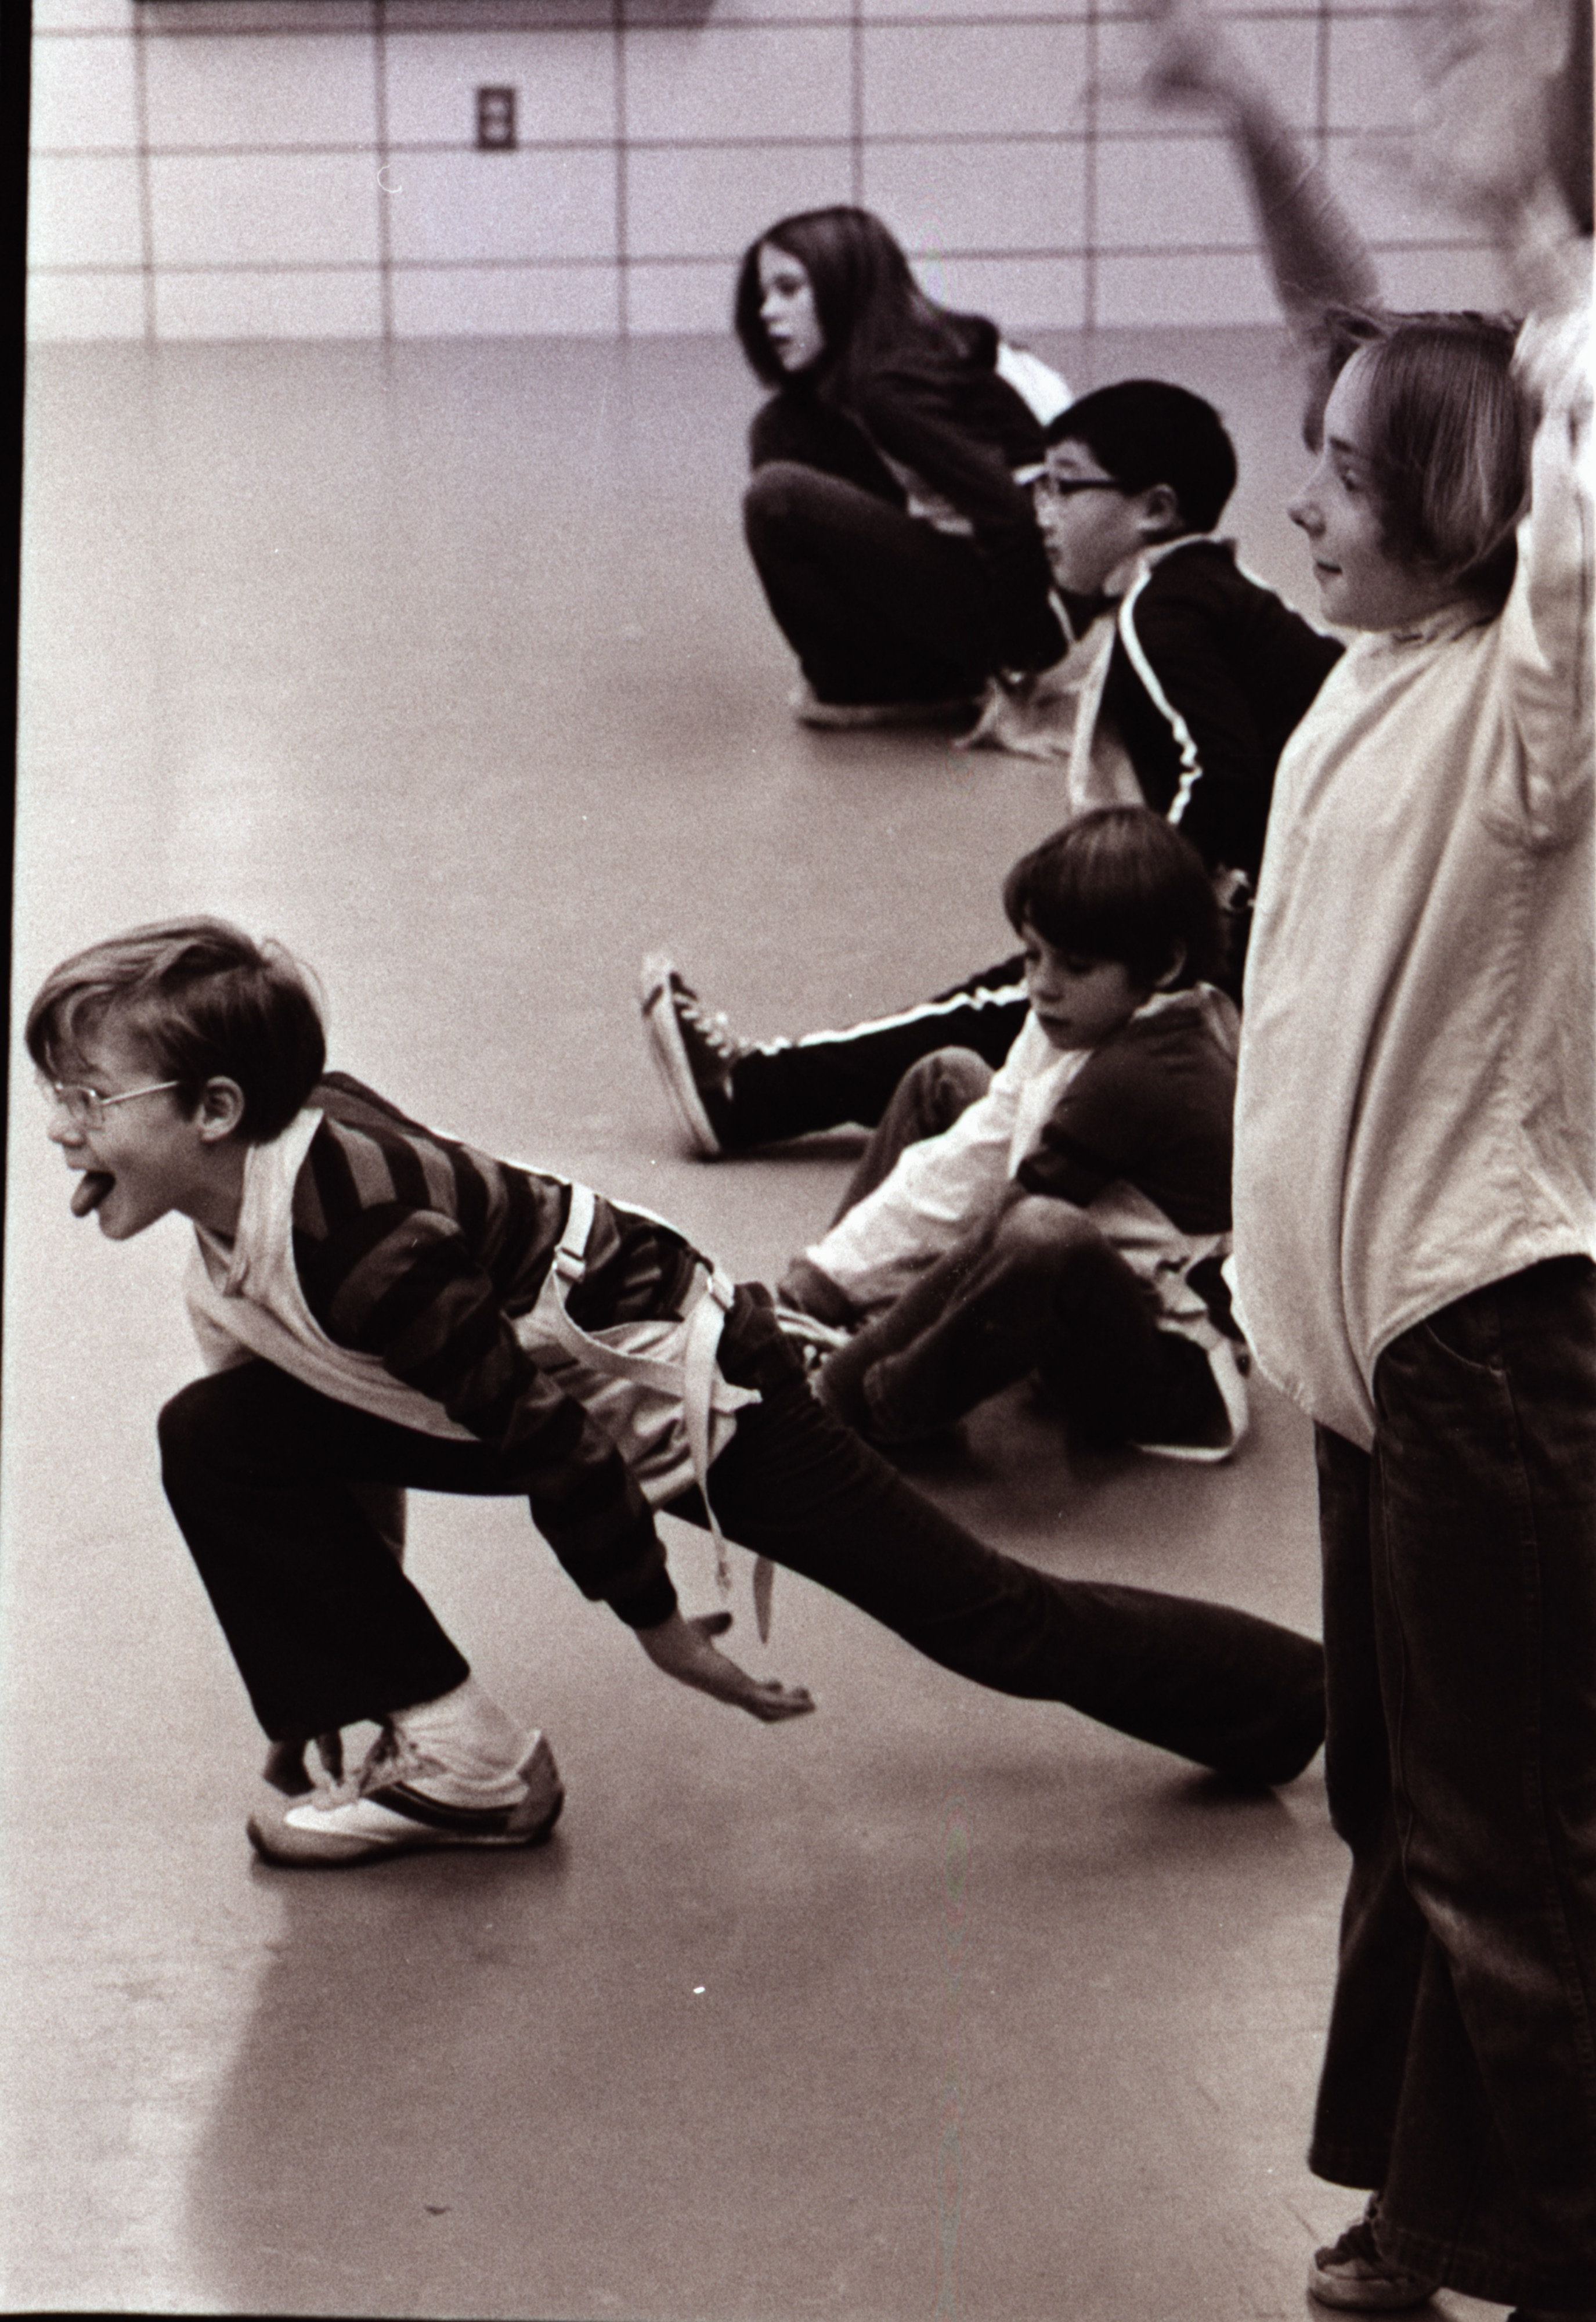 Students in Fencing Class, Ann Arbor Y, December 1976 image